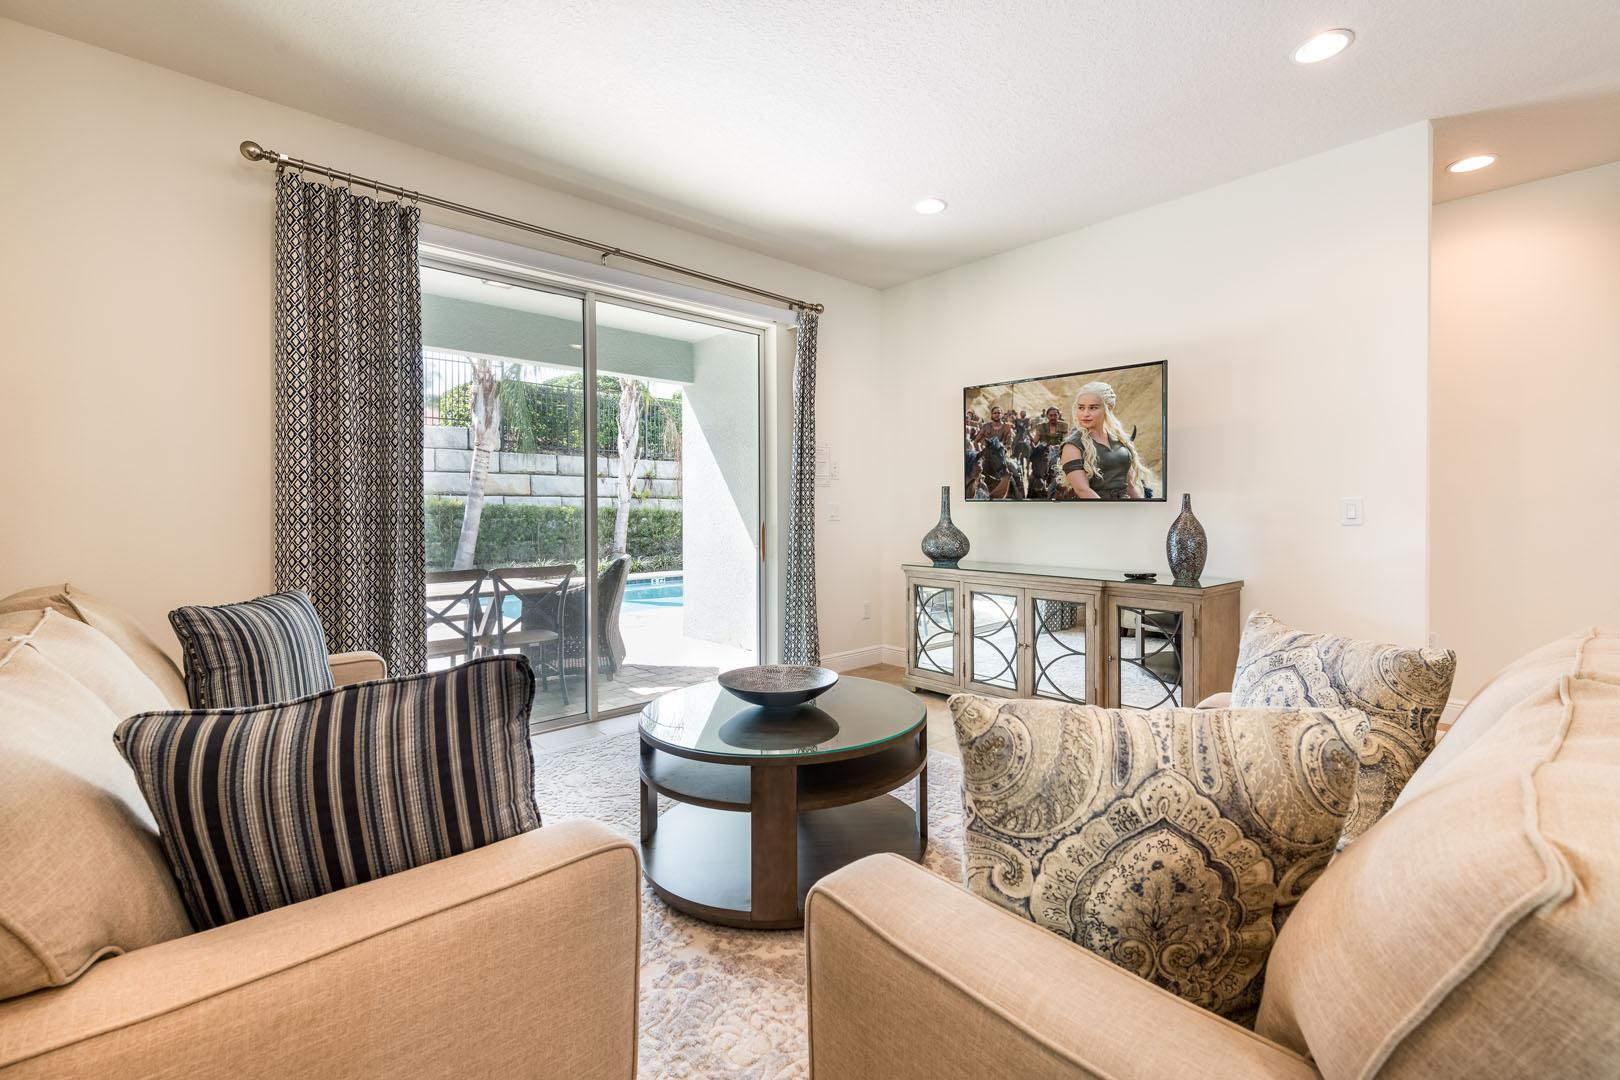 Property Image 2 - Inviting Home near Disney with Games and Themed Rooms